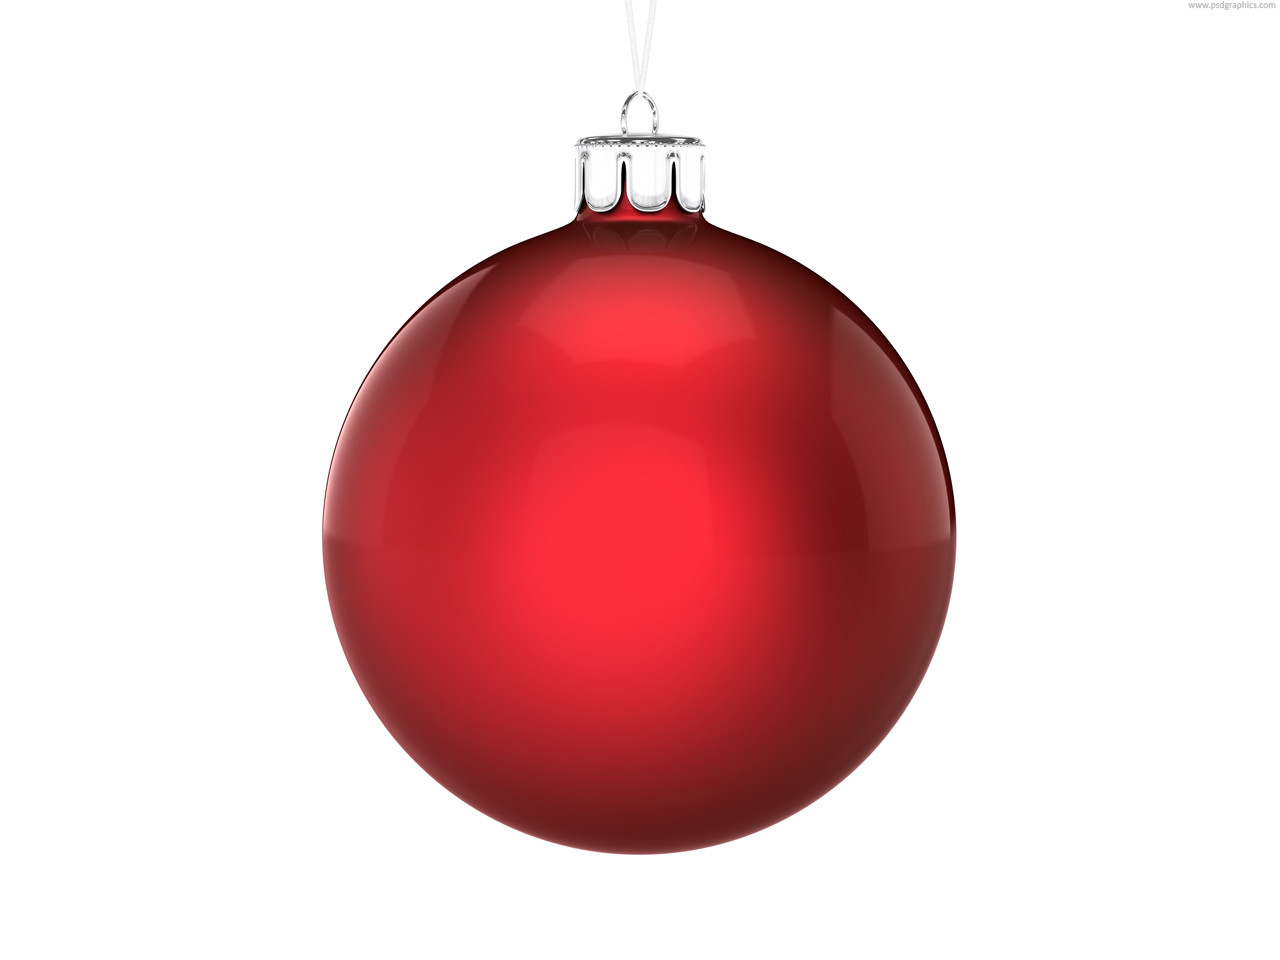 Awesome Christmas ornaments Balls Invitation Template Christmas Tree Balls Of Wonderful 50 Pictures Christmas Tree Balls